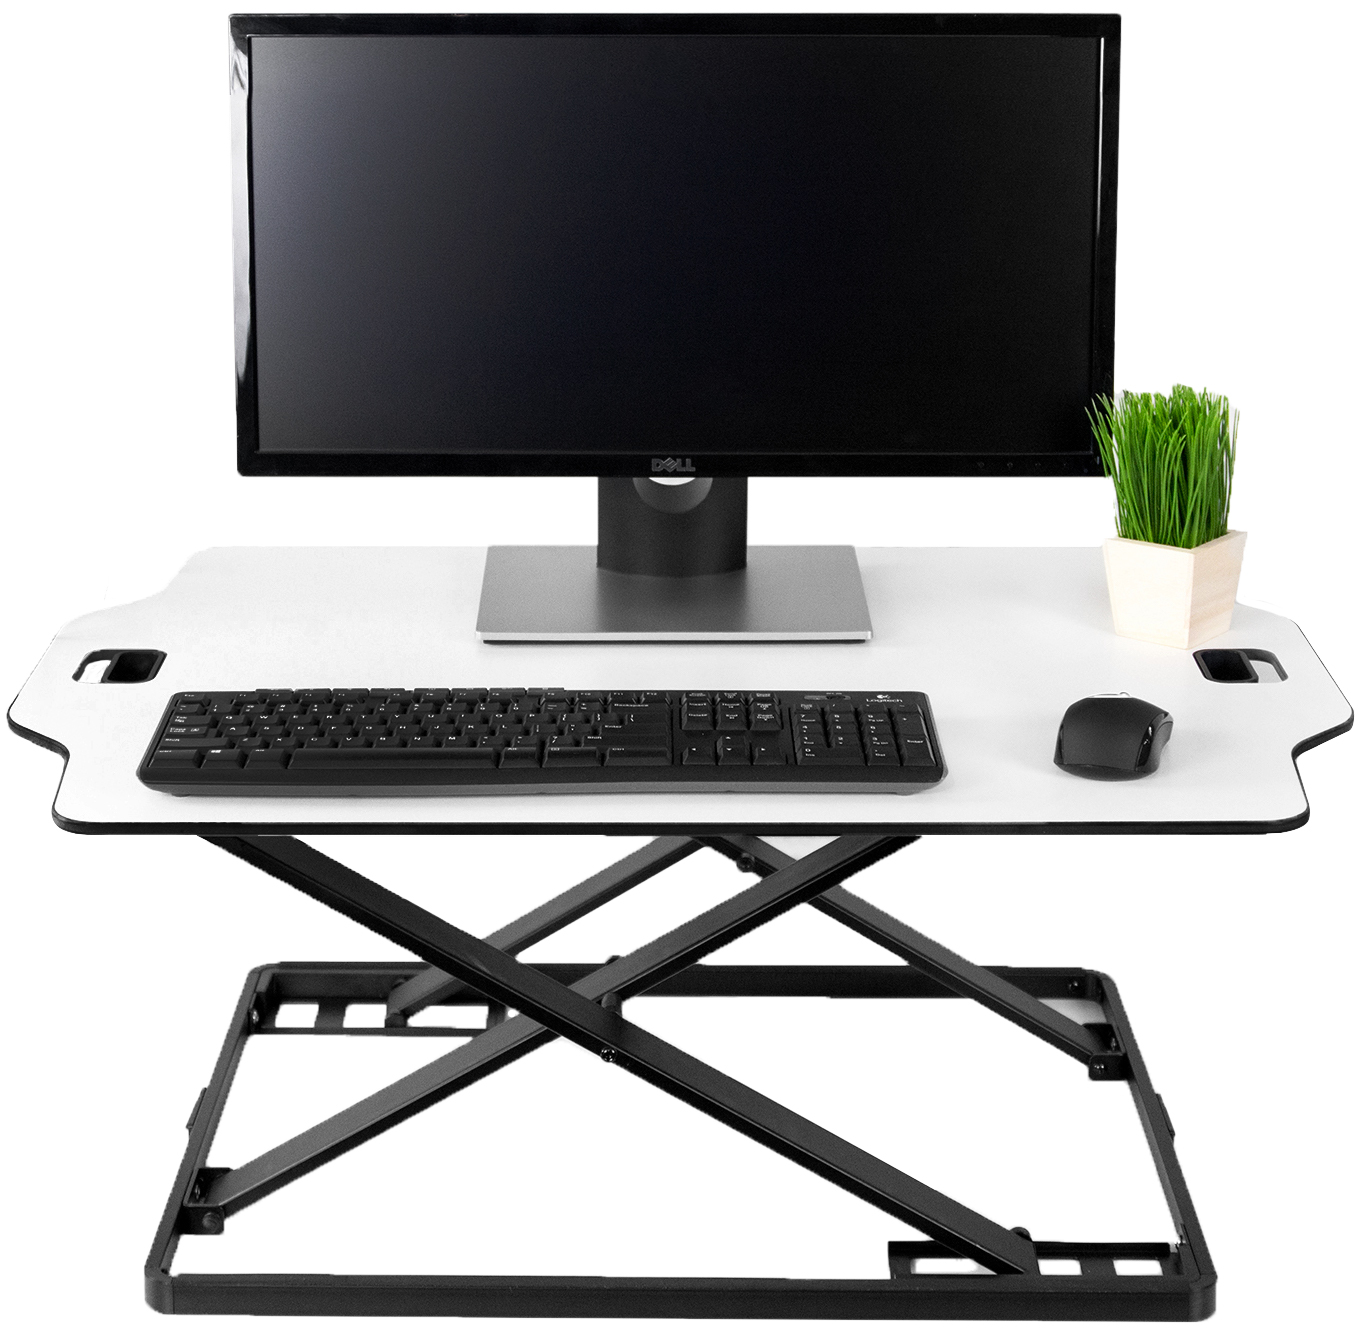 "VIVO White Height Adjustable Standing 32"" Desk Sit Stand Tabletop Monitor Laptop Riser Platform Station (DESK-V000H)"